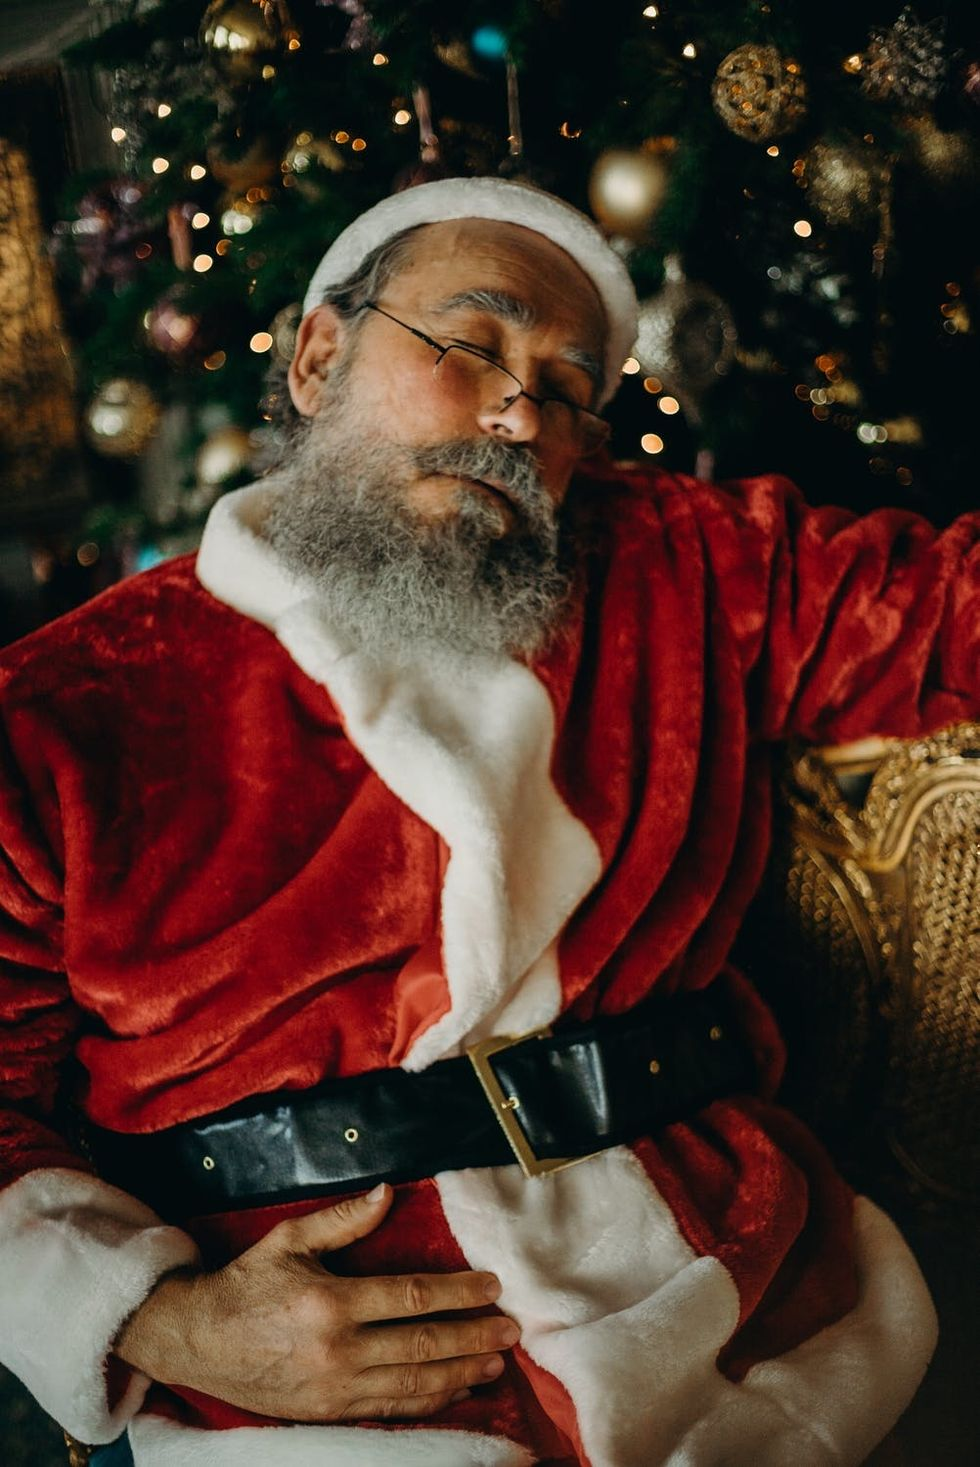 5 Merry Ways To Avoid Holiday Burnout